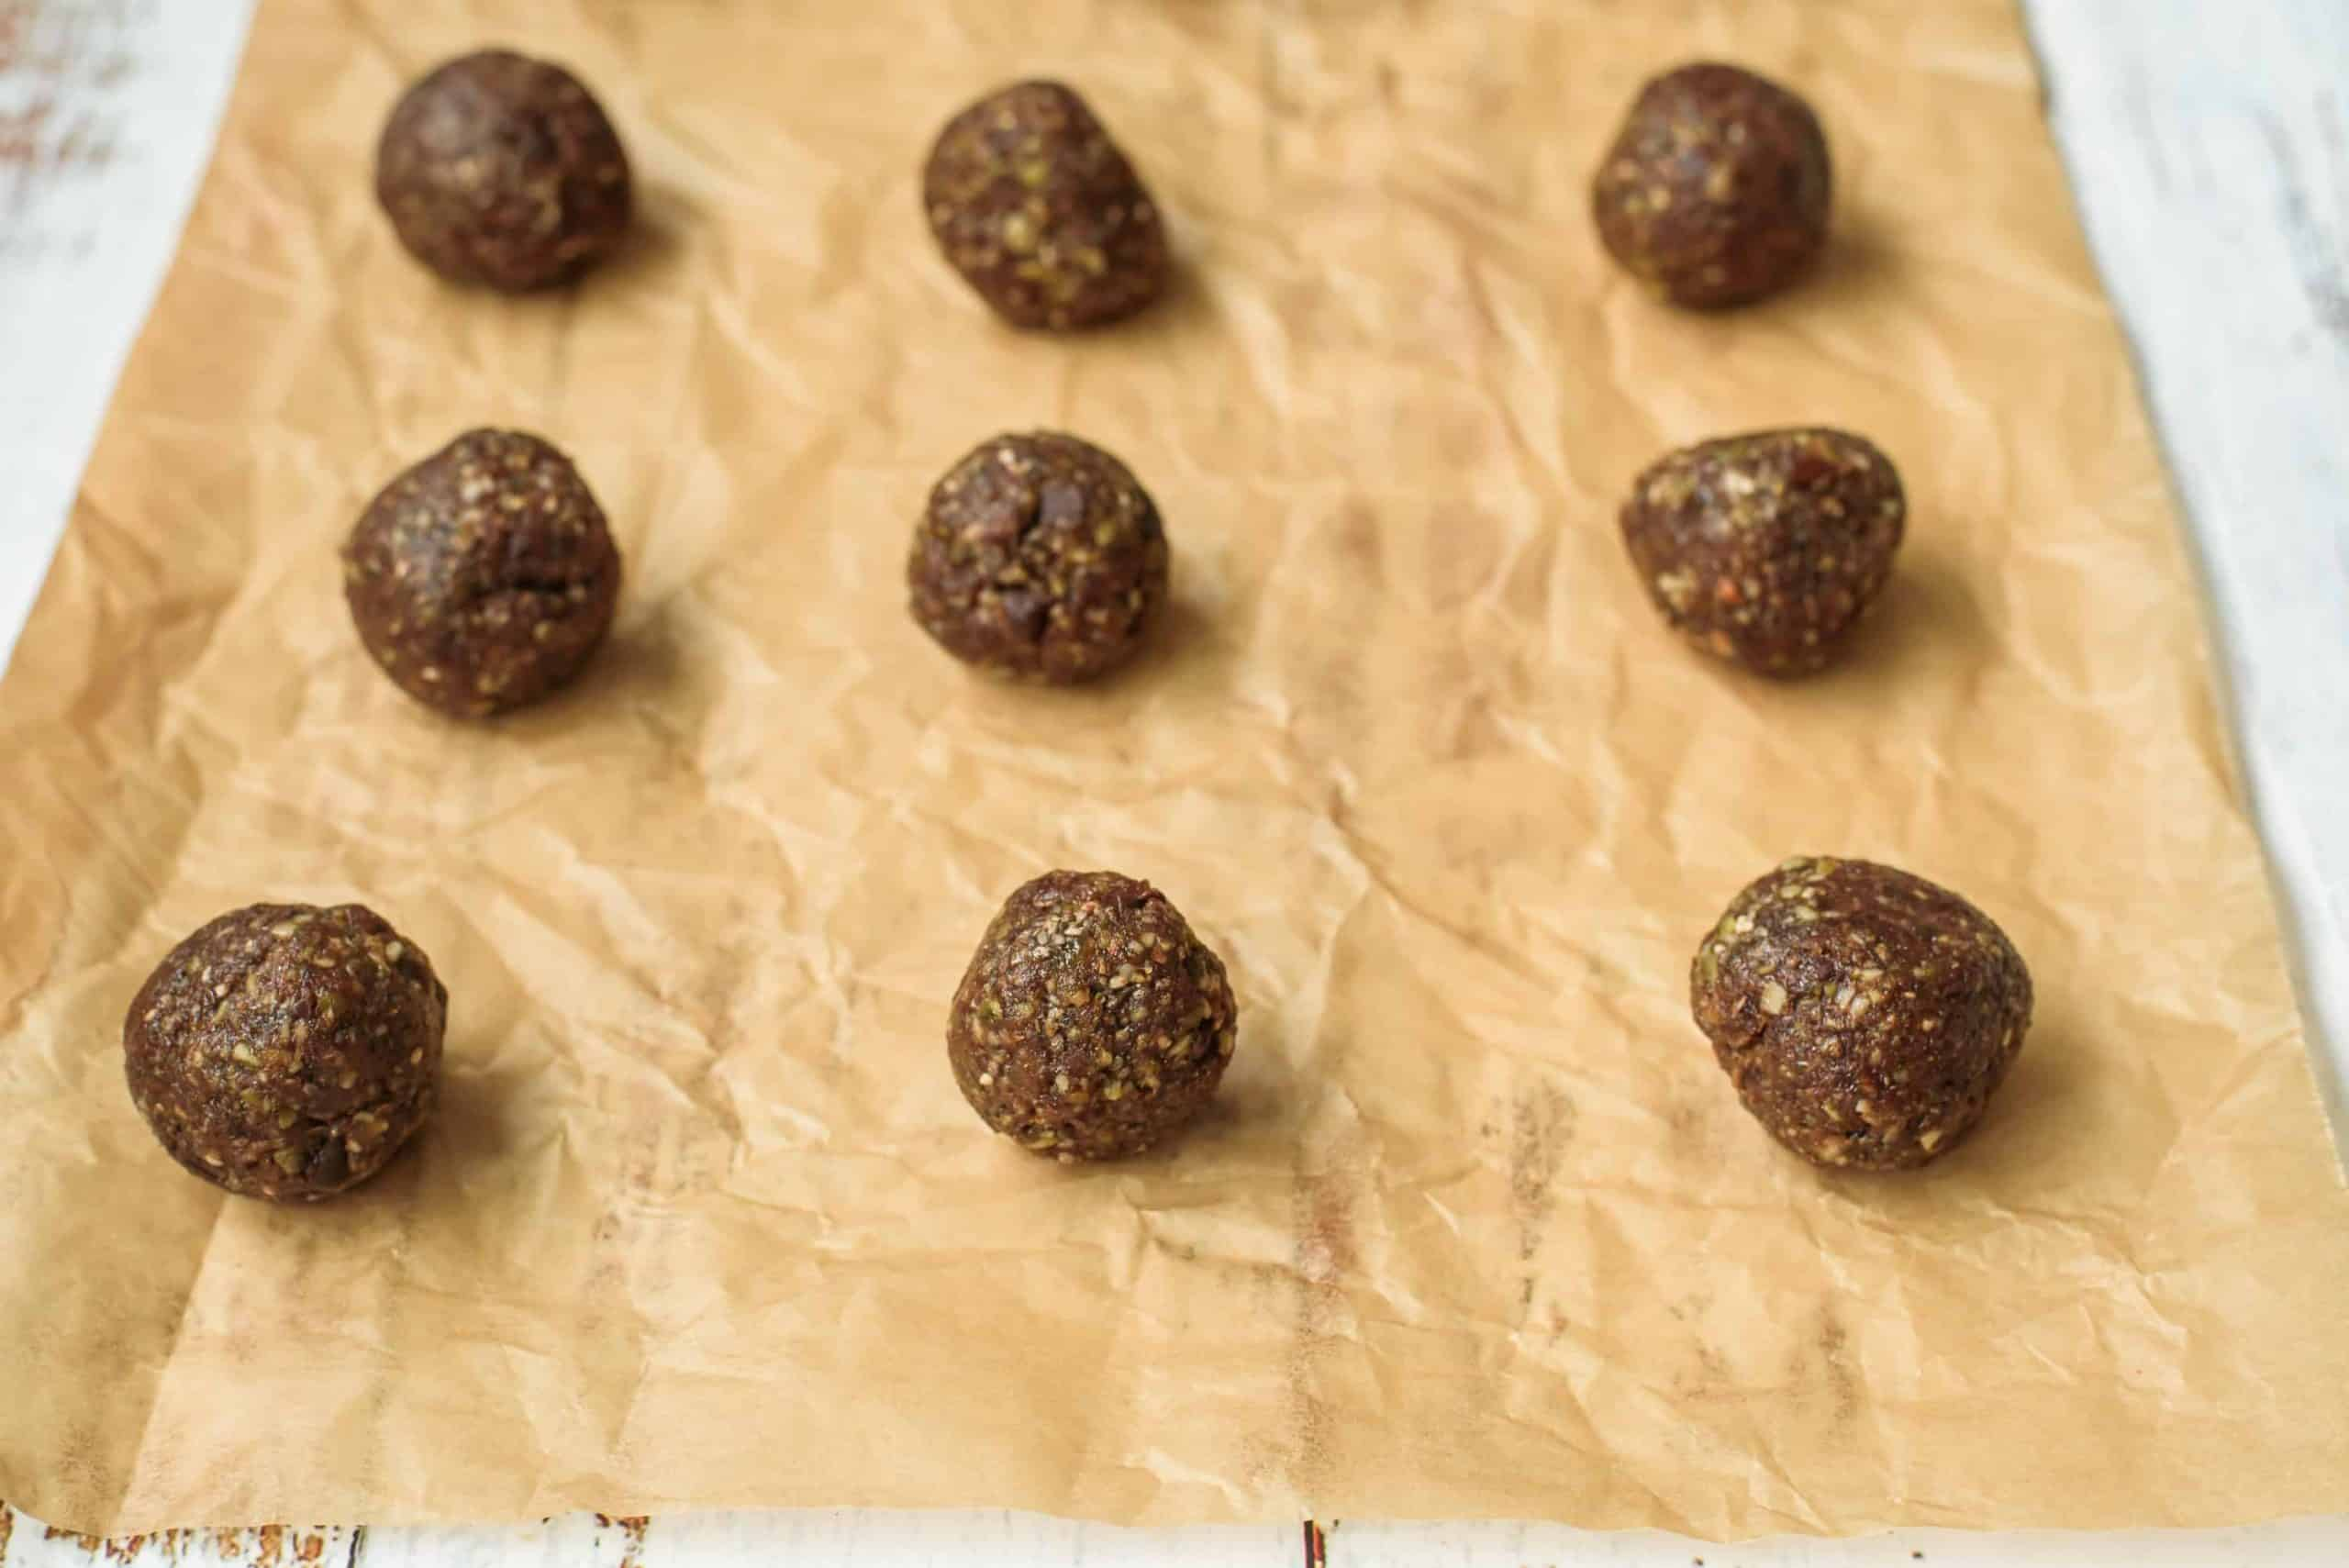 Closeup of Peanut Butter Crunch Balls on Parchment lined Baking pan.